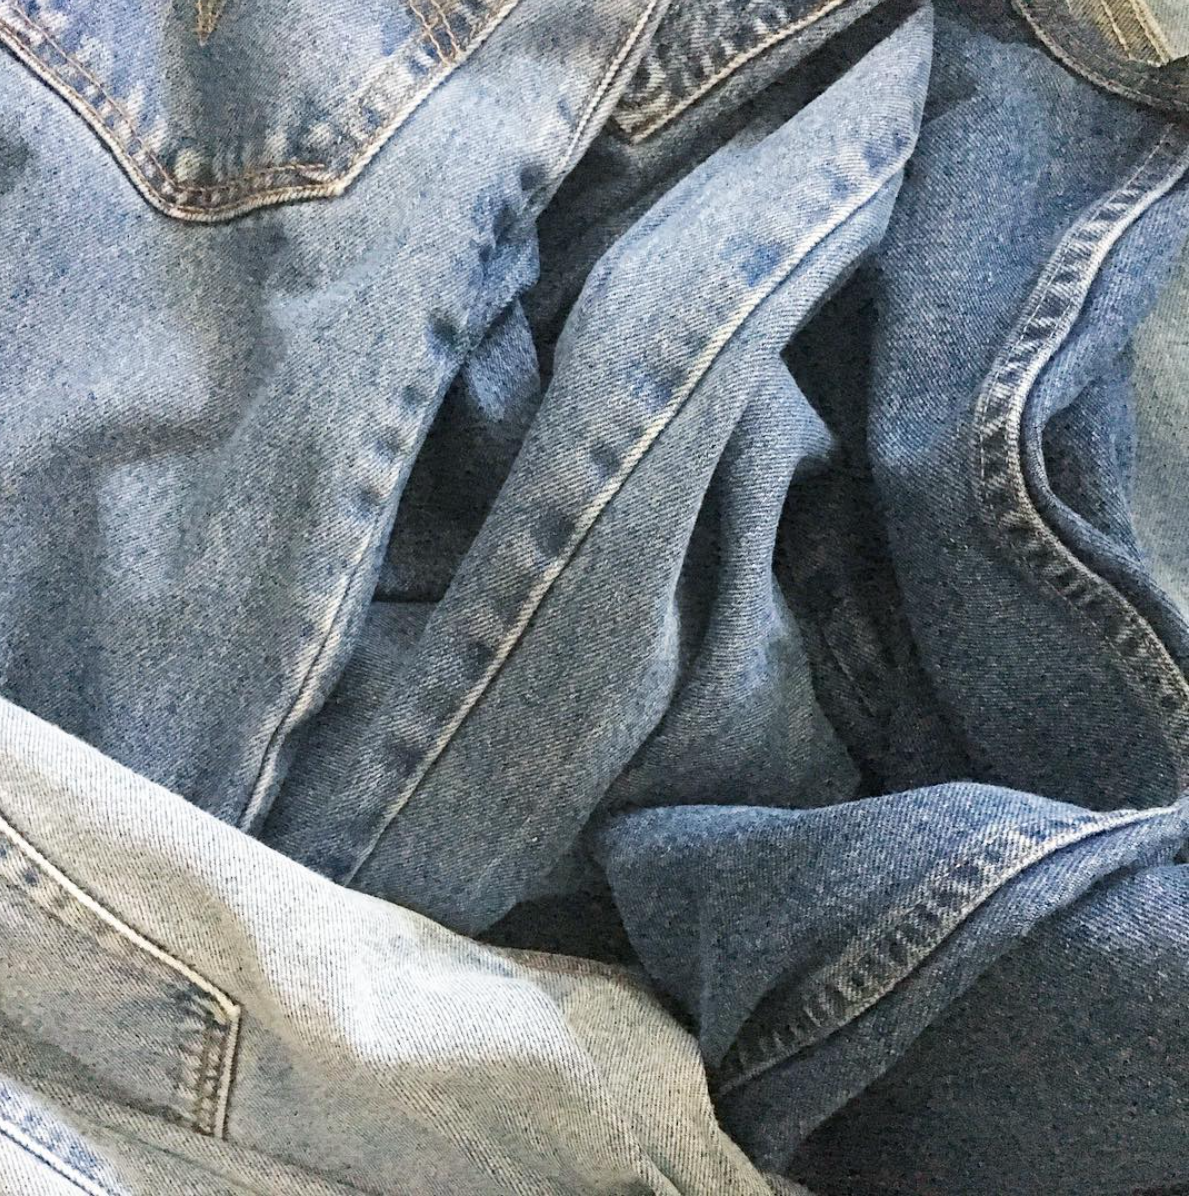 Upcycling Process: Vintage Denim Before Cutting